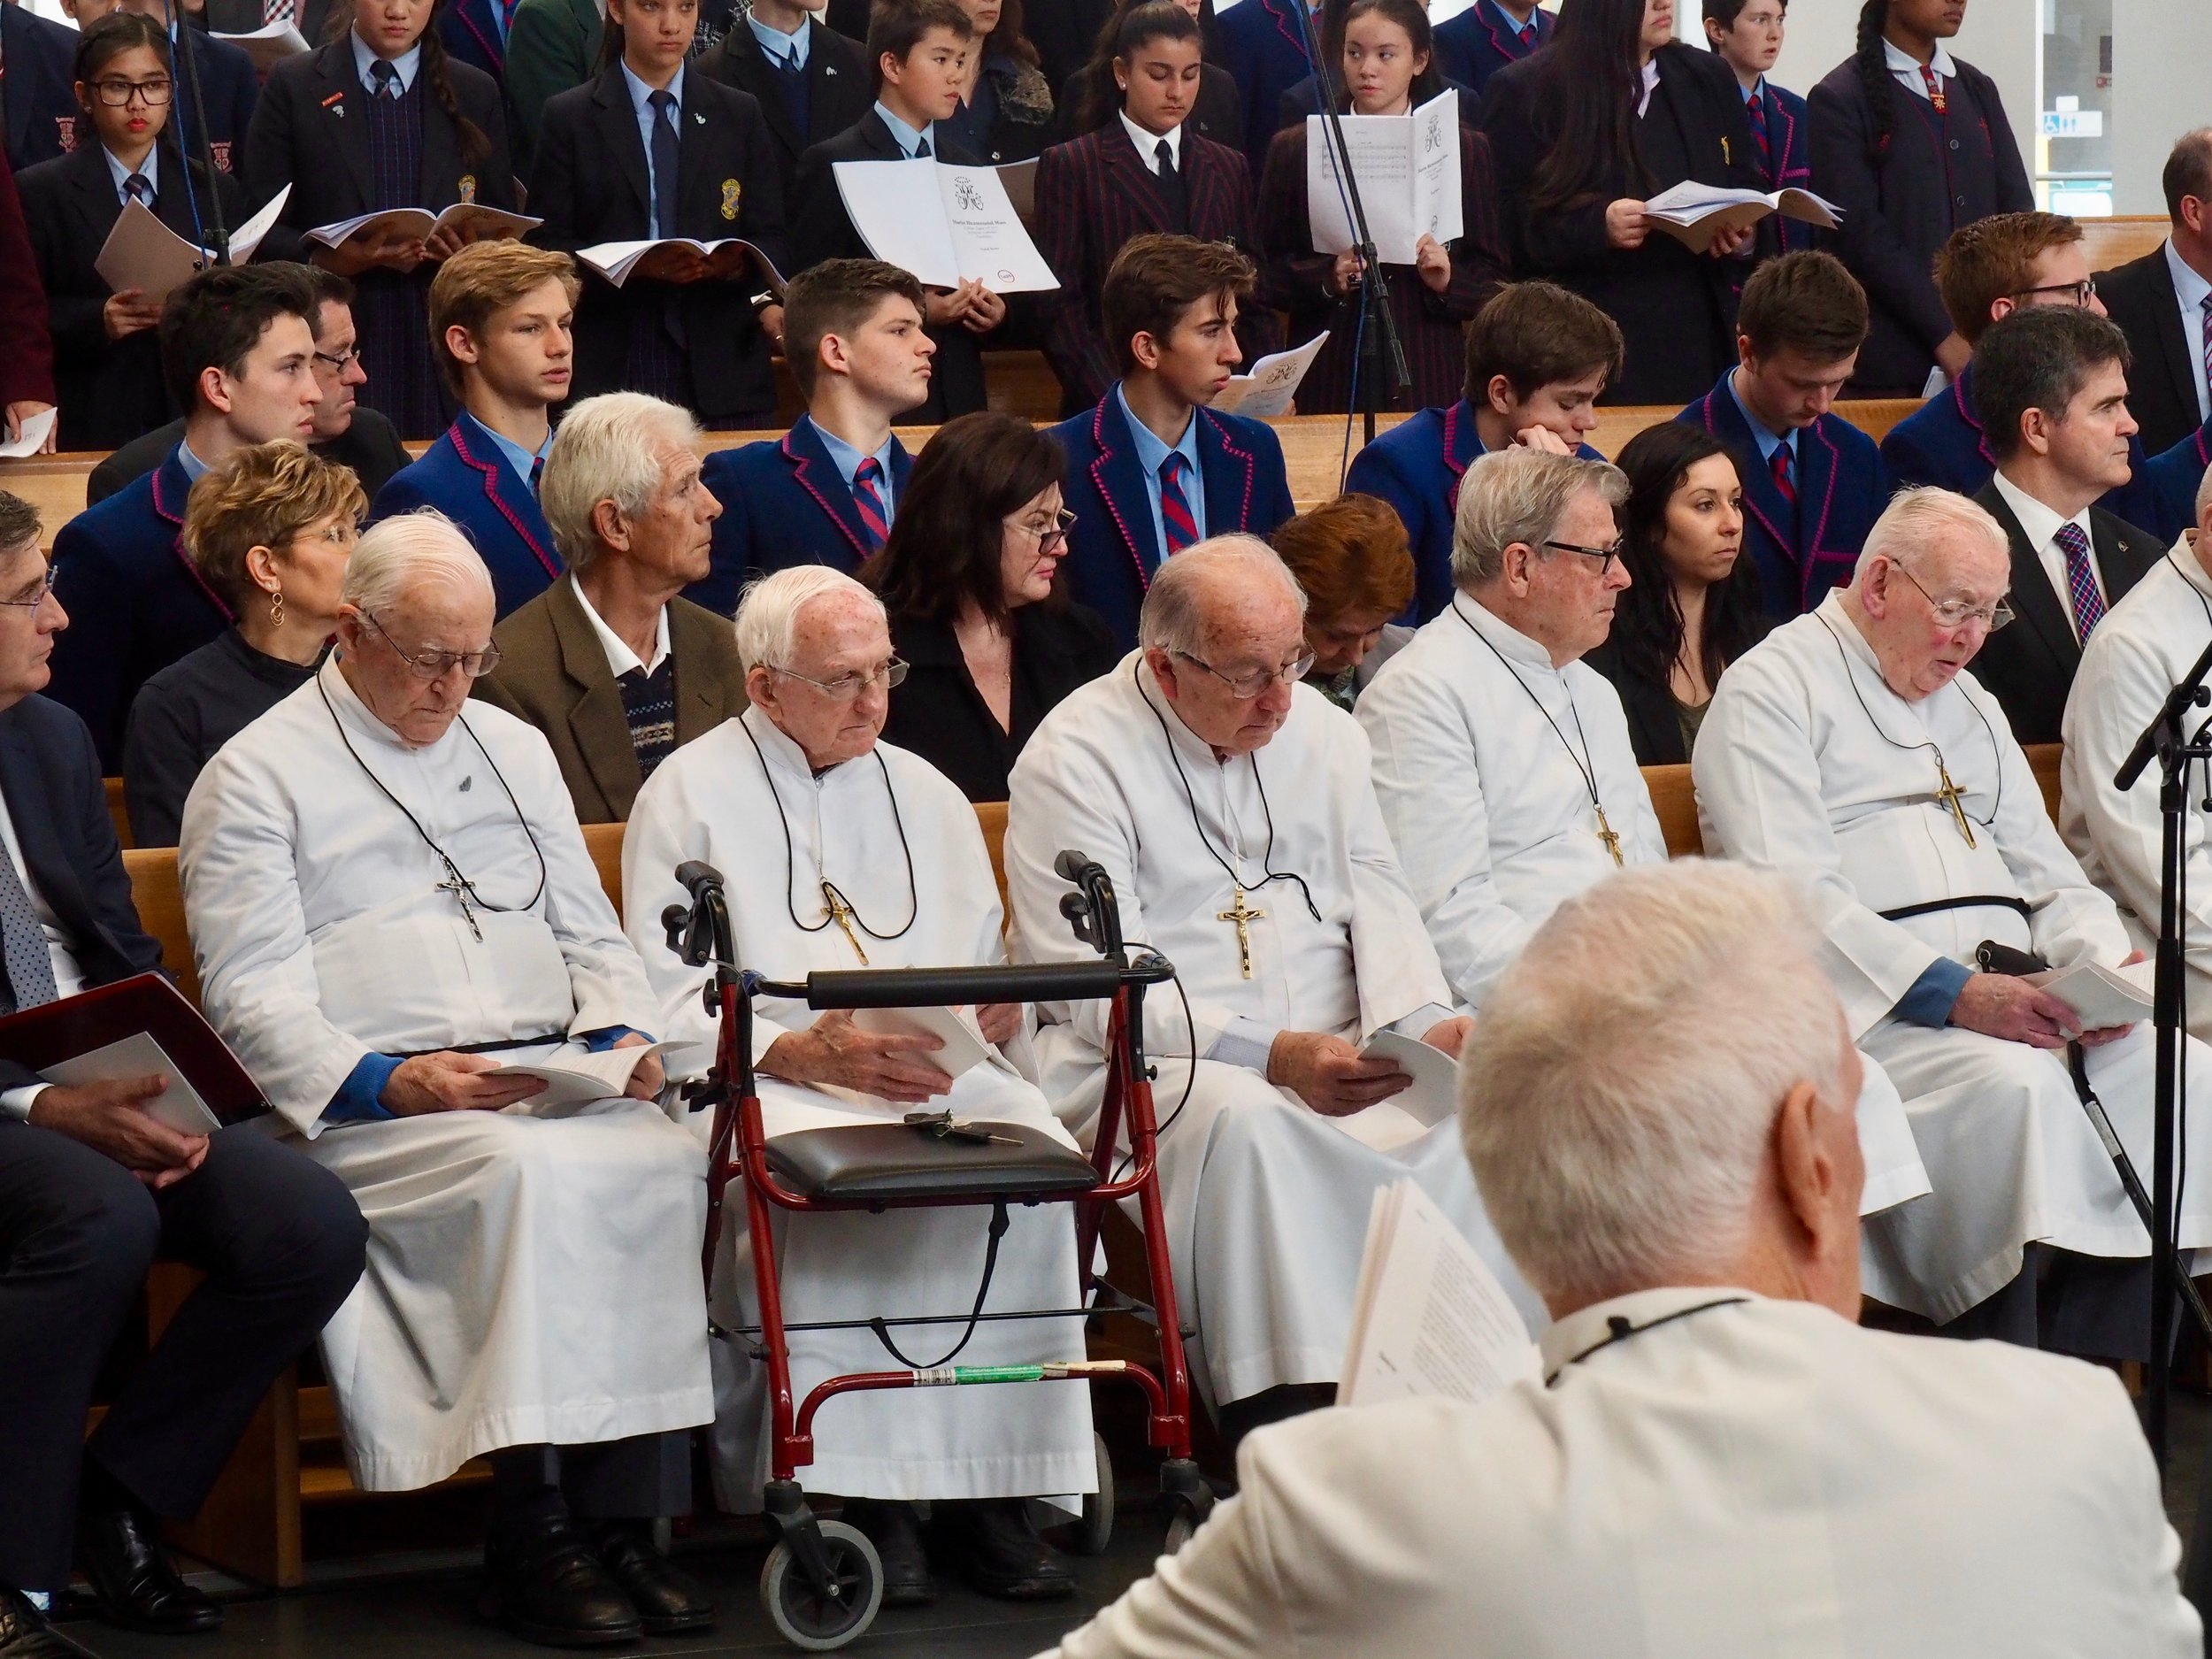 Bicentenary Mass Sydney 12 Aug 2017 Photos by Paul Harris 00041.jpg